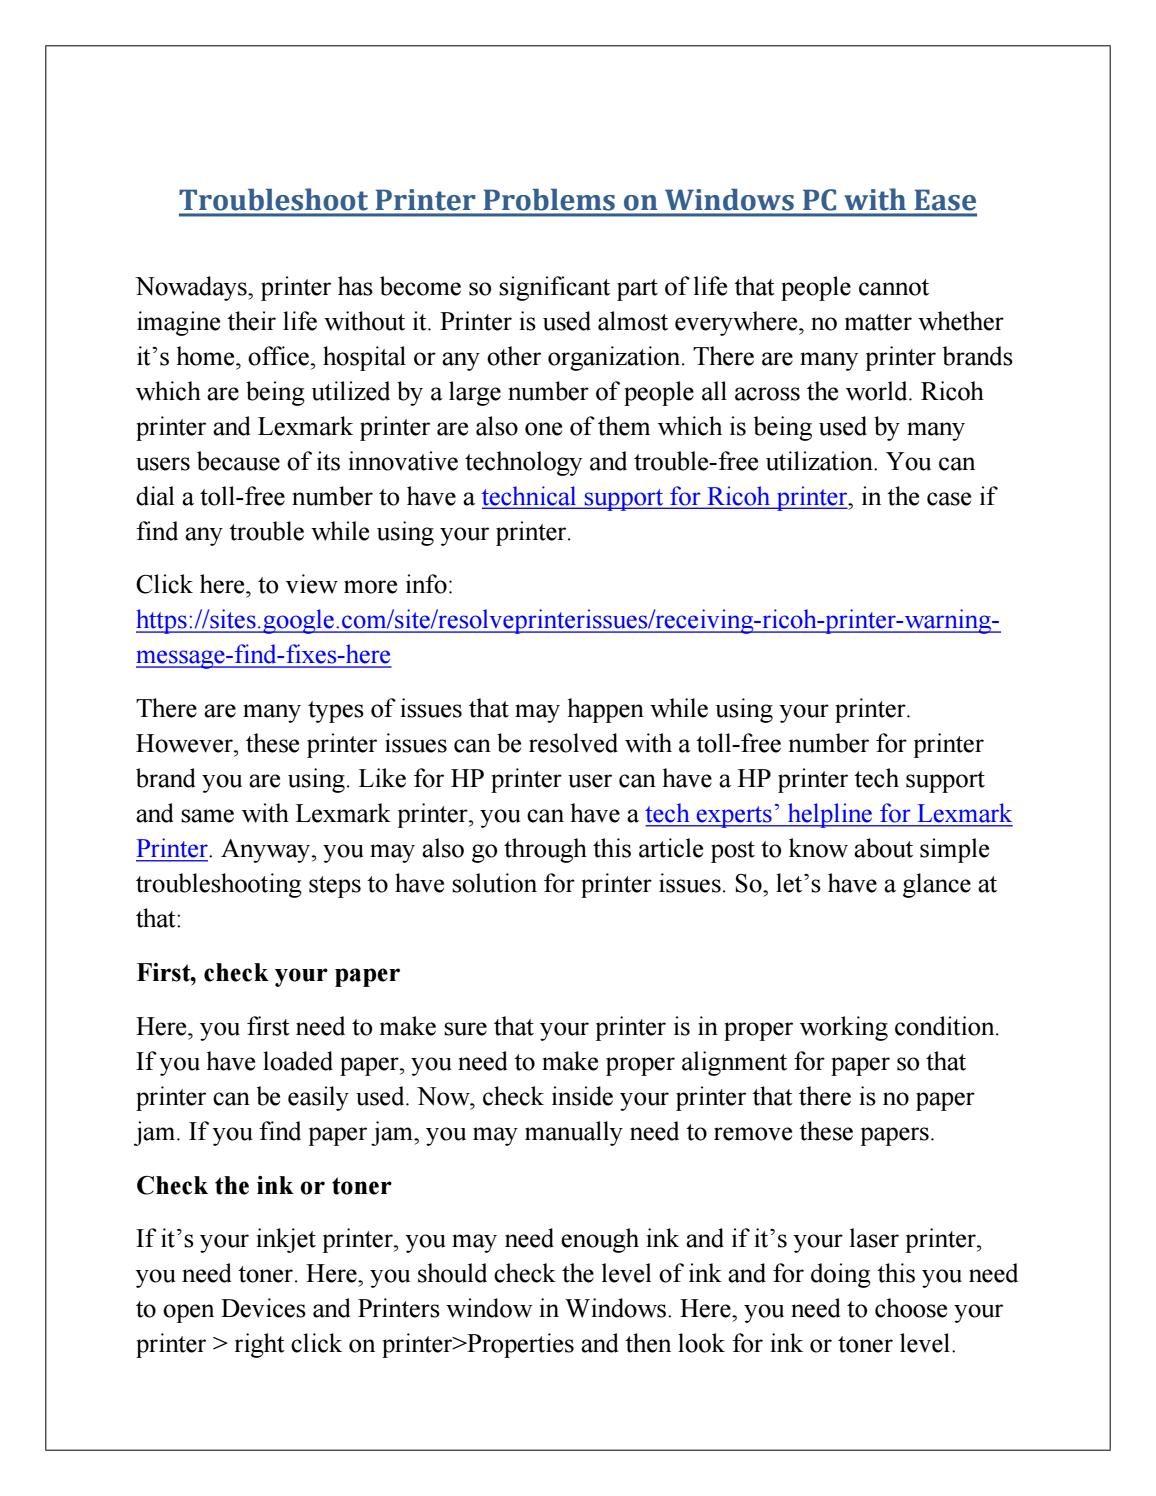 Troubleshoot printer problems on windows pc with ease by Printers